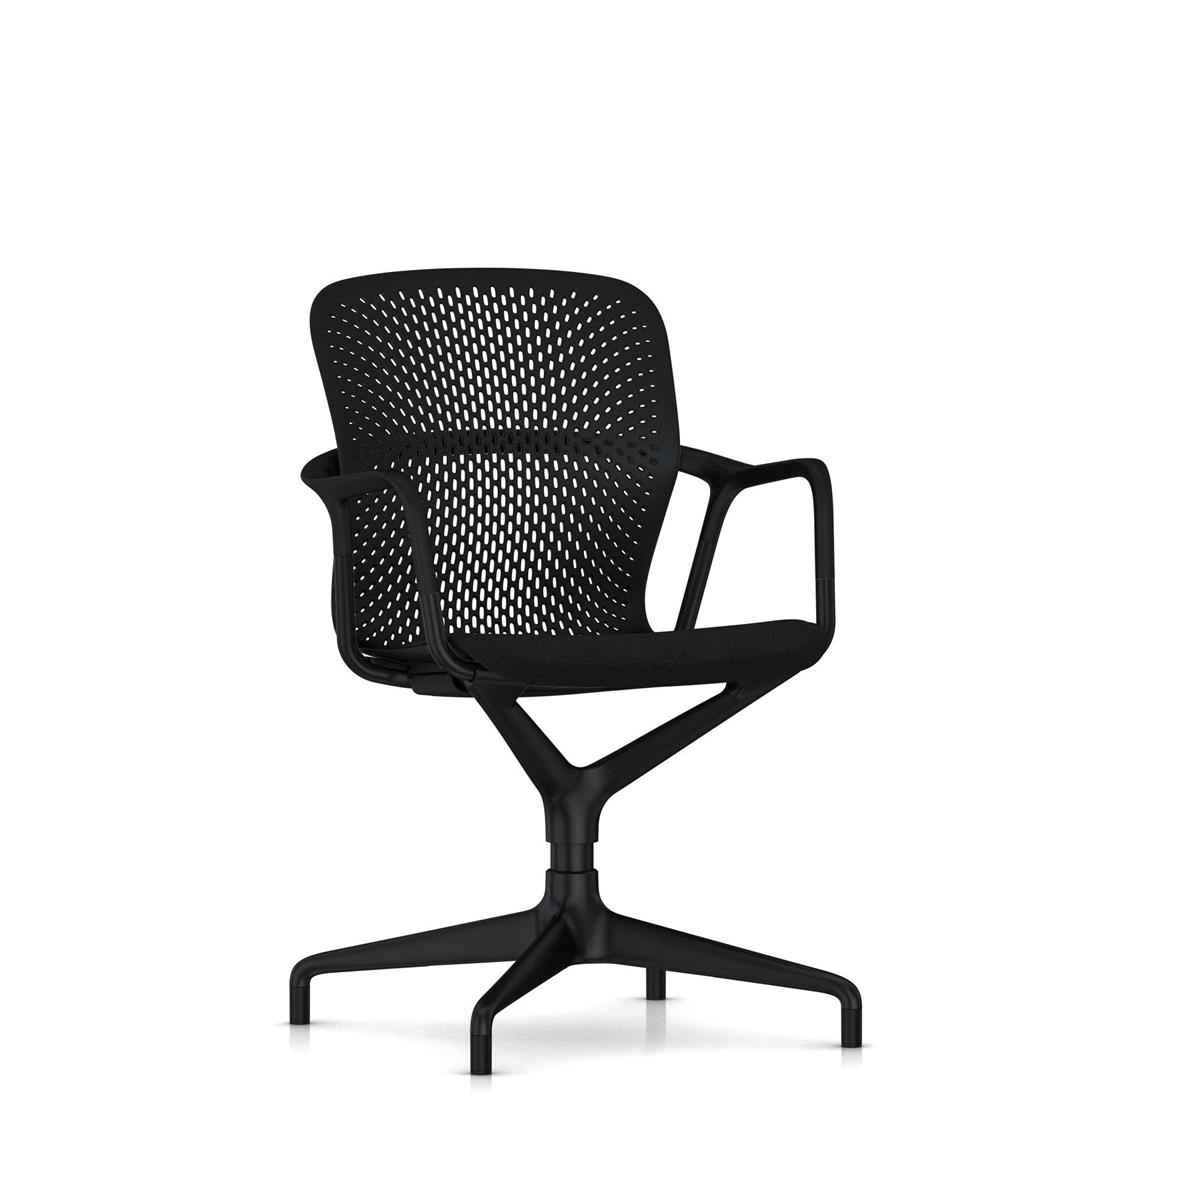 Keyn 4 Star Pedestal - Black with Arms & polstret sete med Camira Sprint, glidere for alle underlag